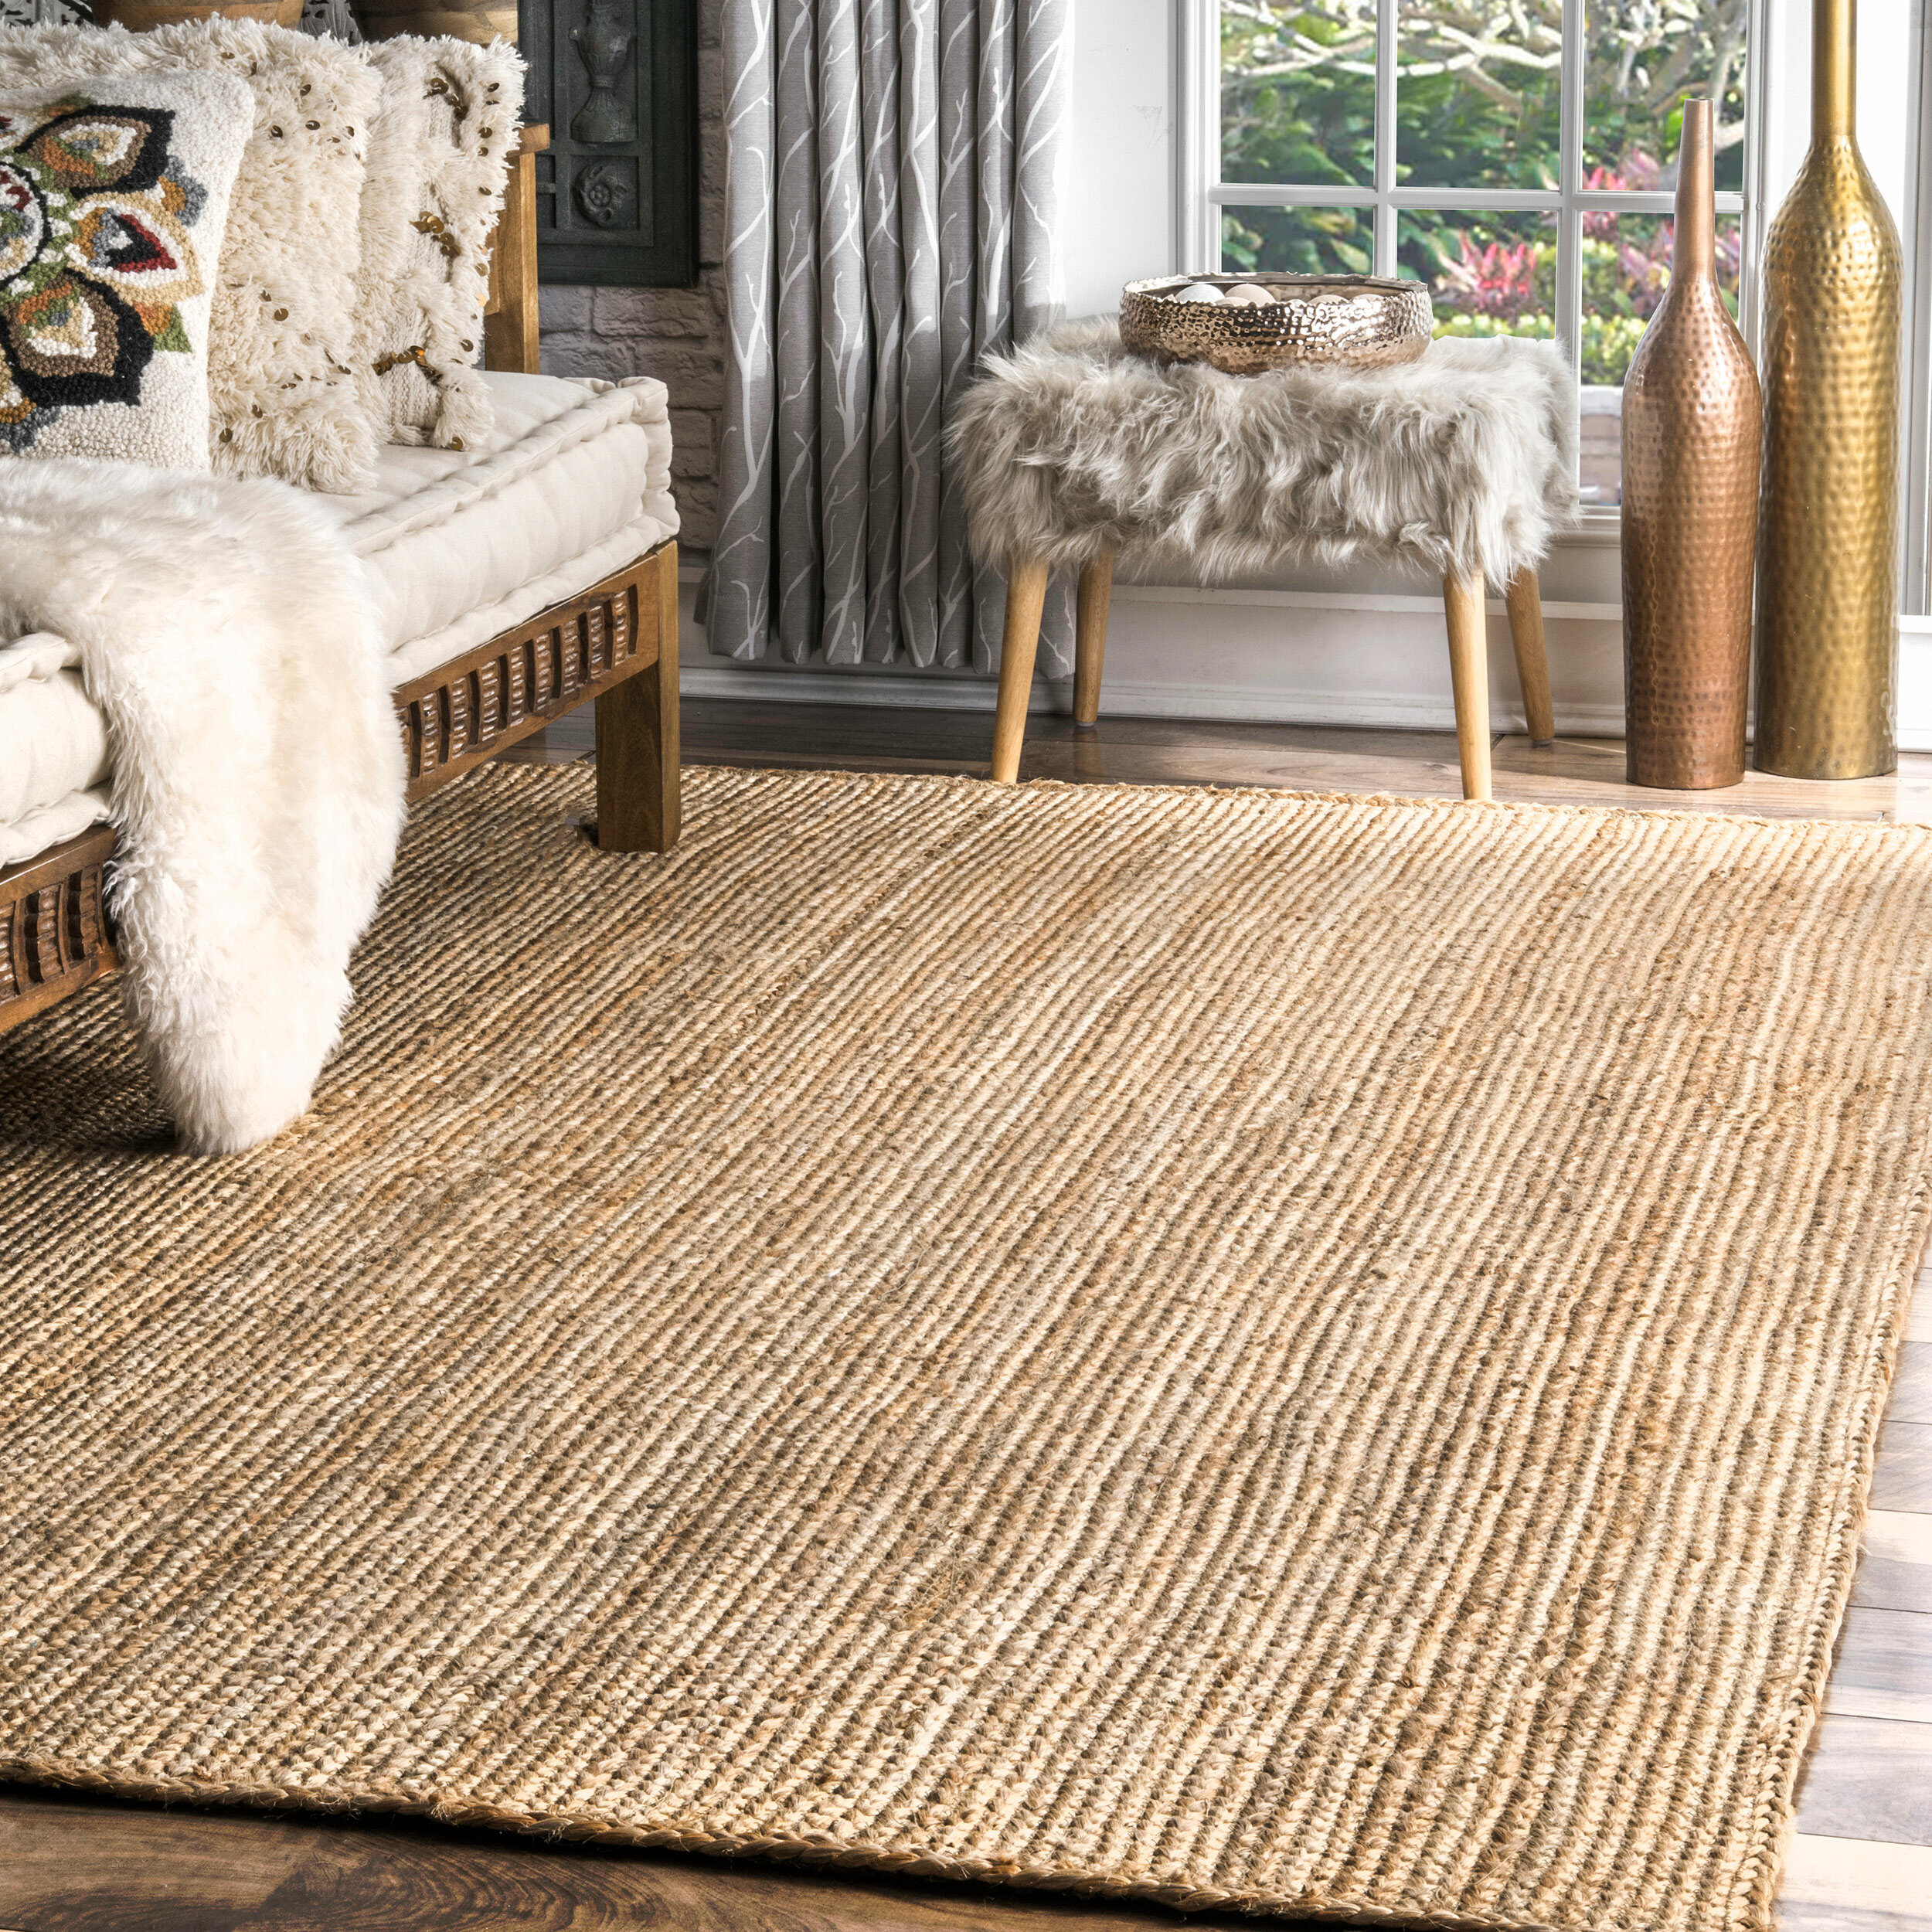 Wayfair 8 X 10 Jute Sisal Area Rugs You Ll Love In 2021